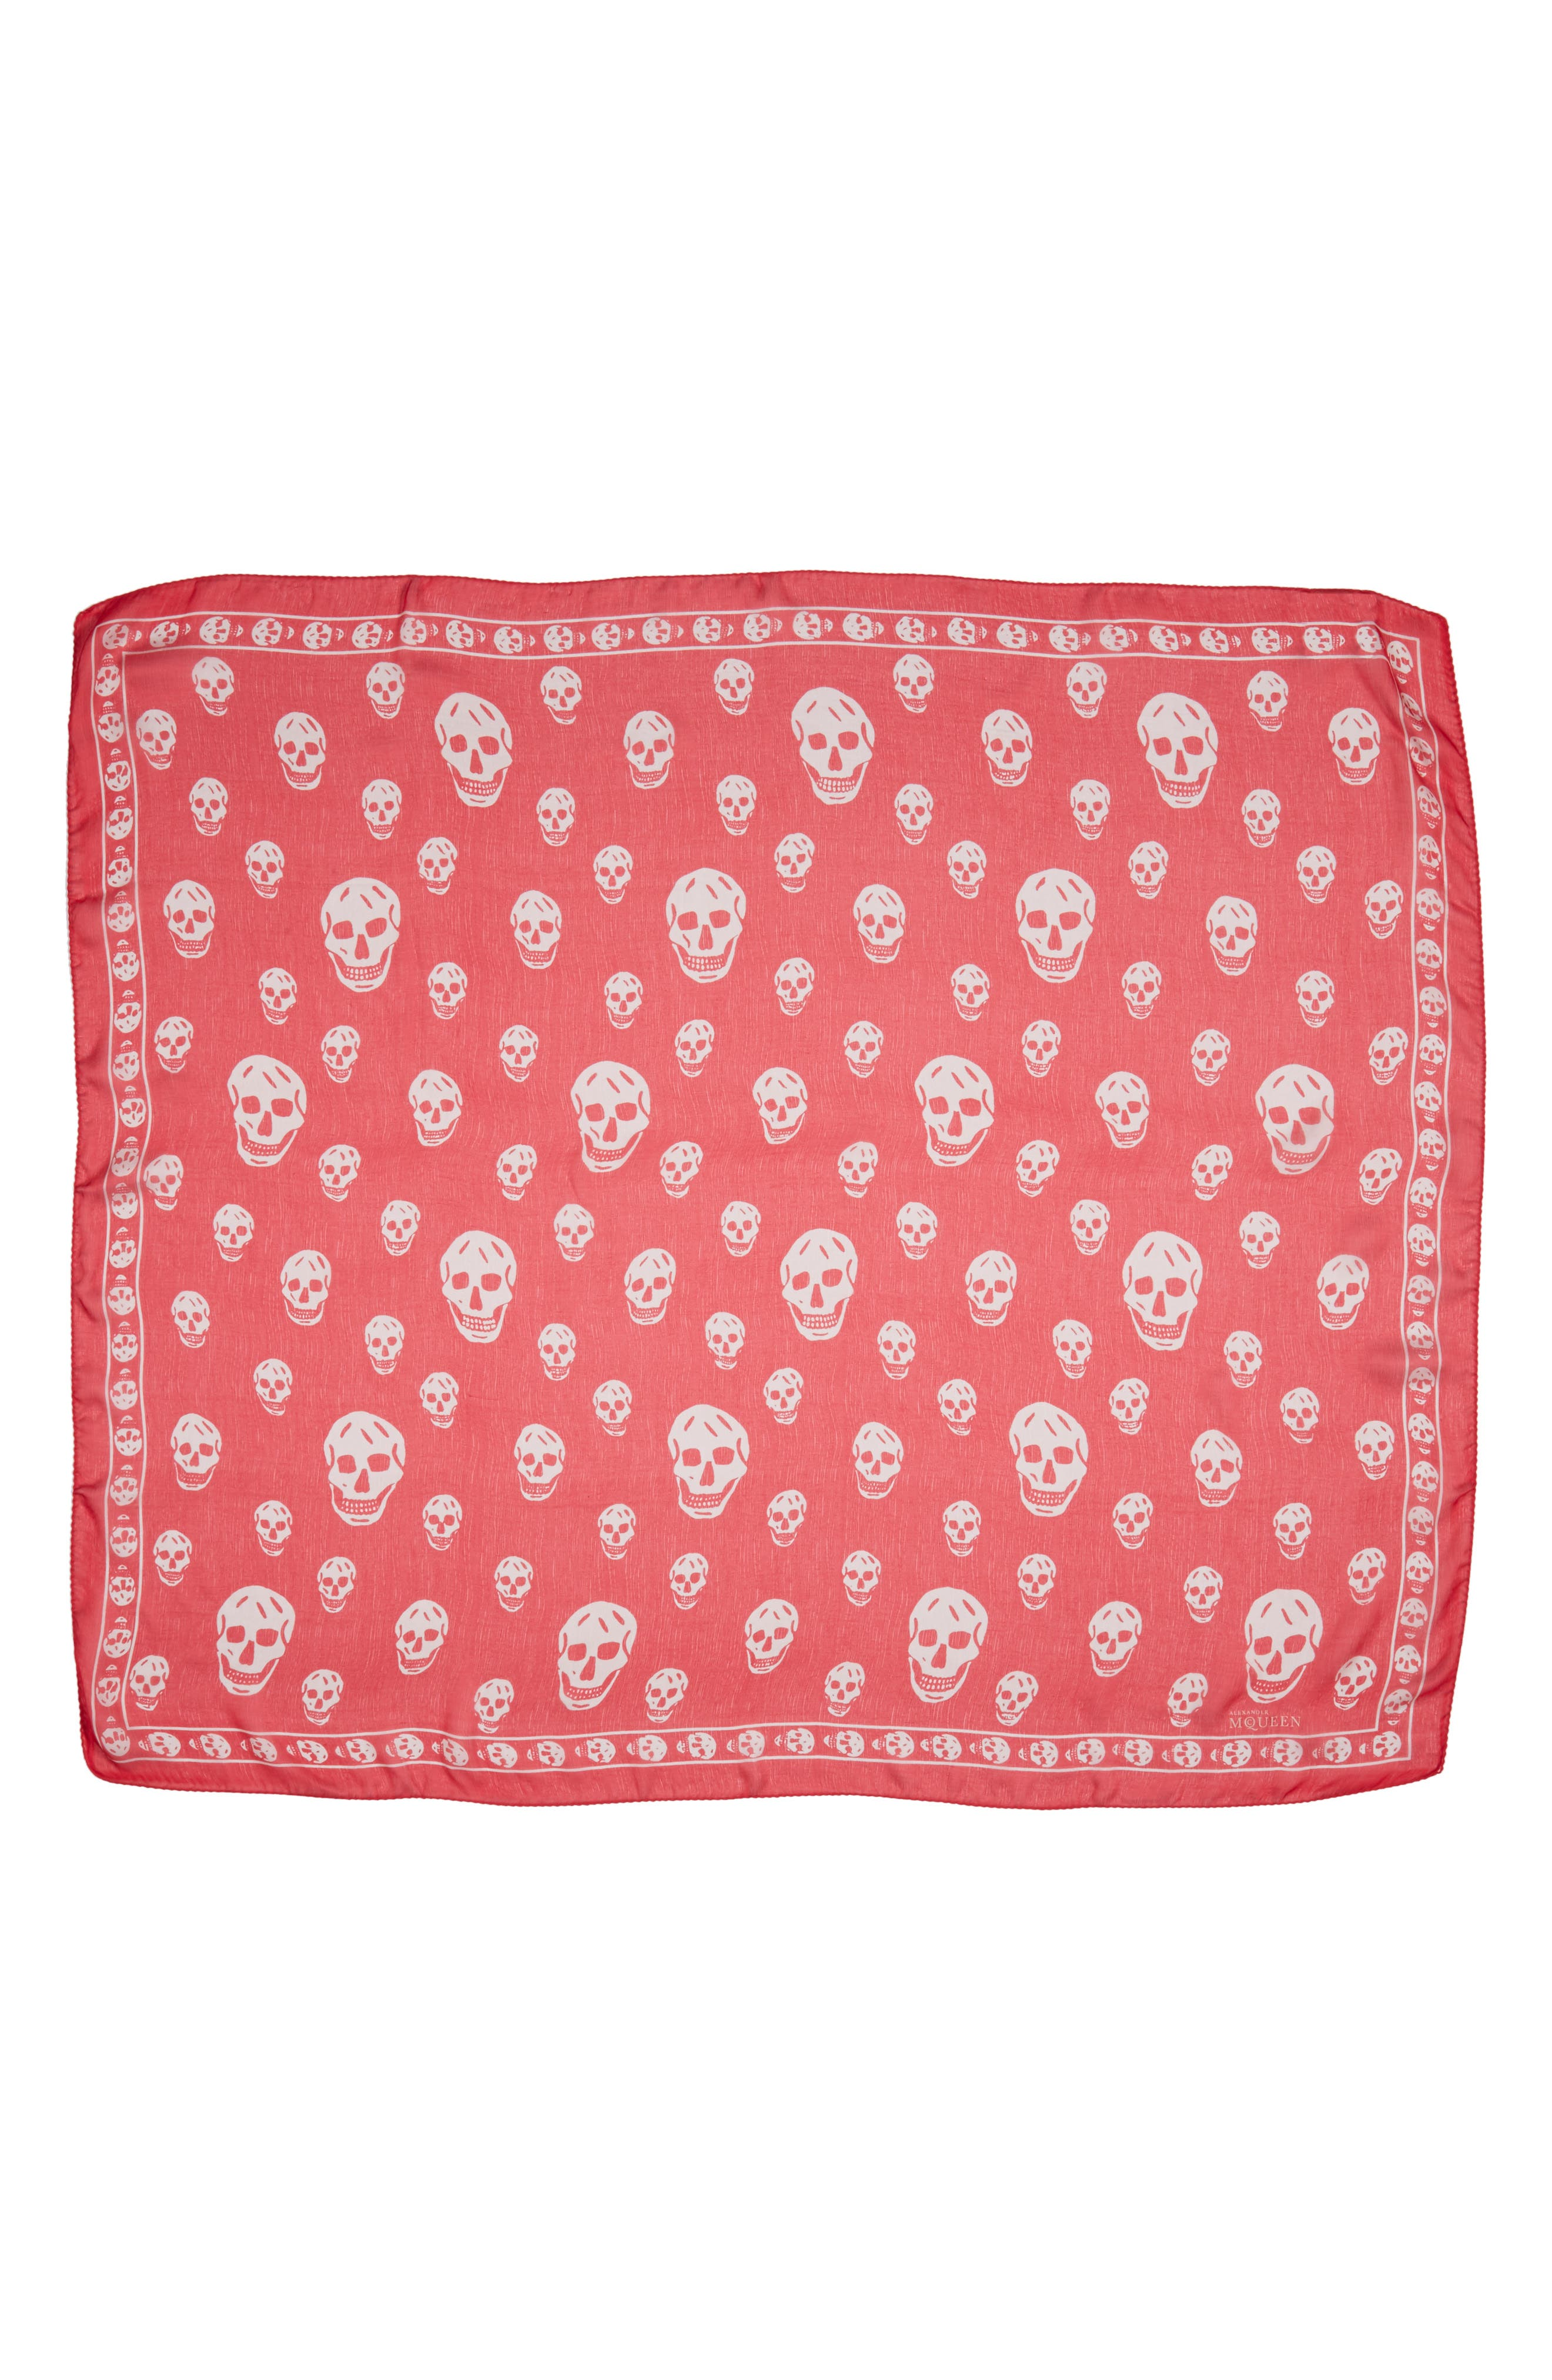 'Skull' Chiffon Scarf,                         Main,                         color, Coral/ Beige